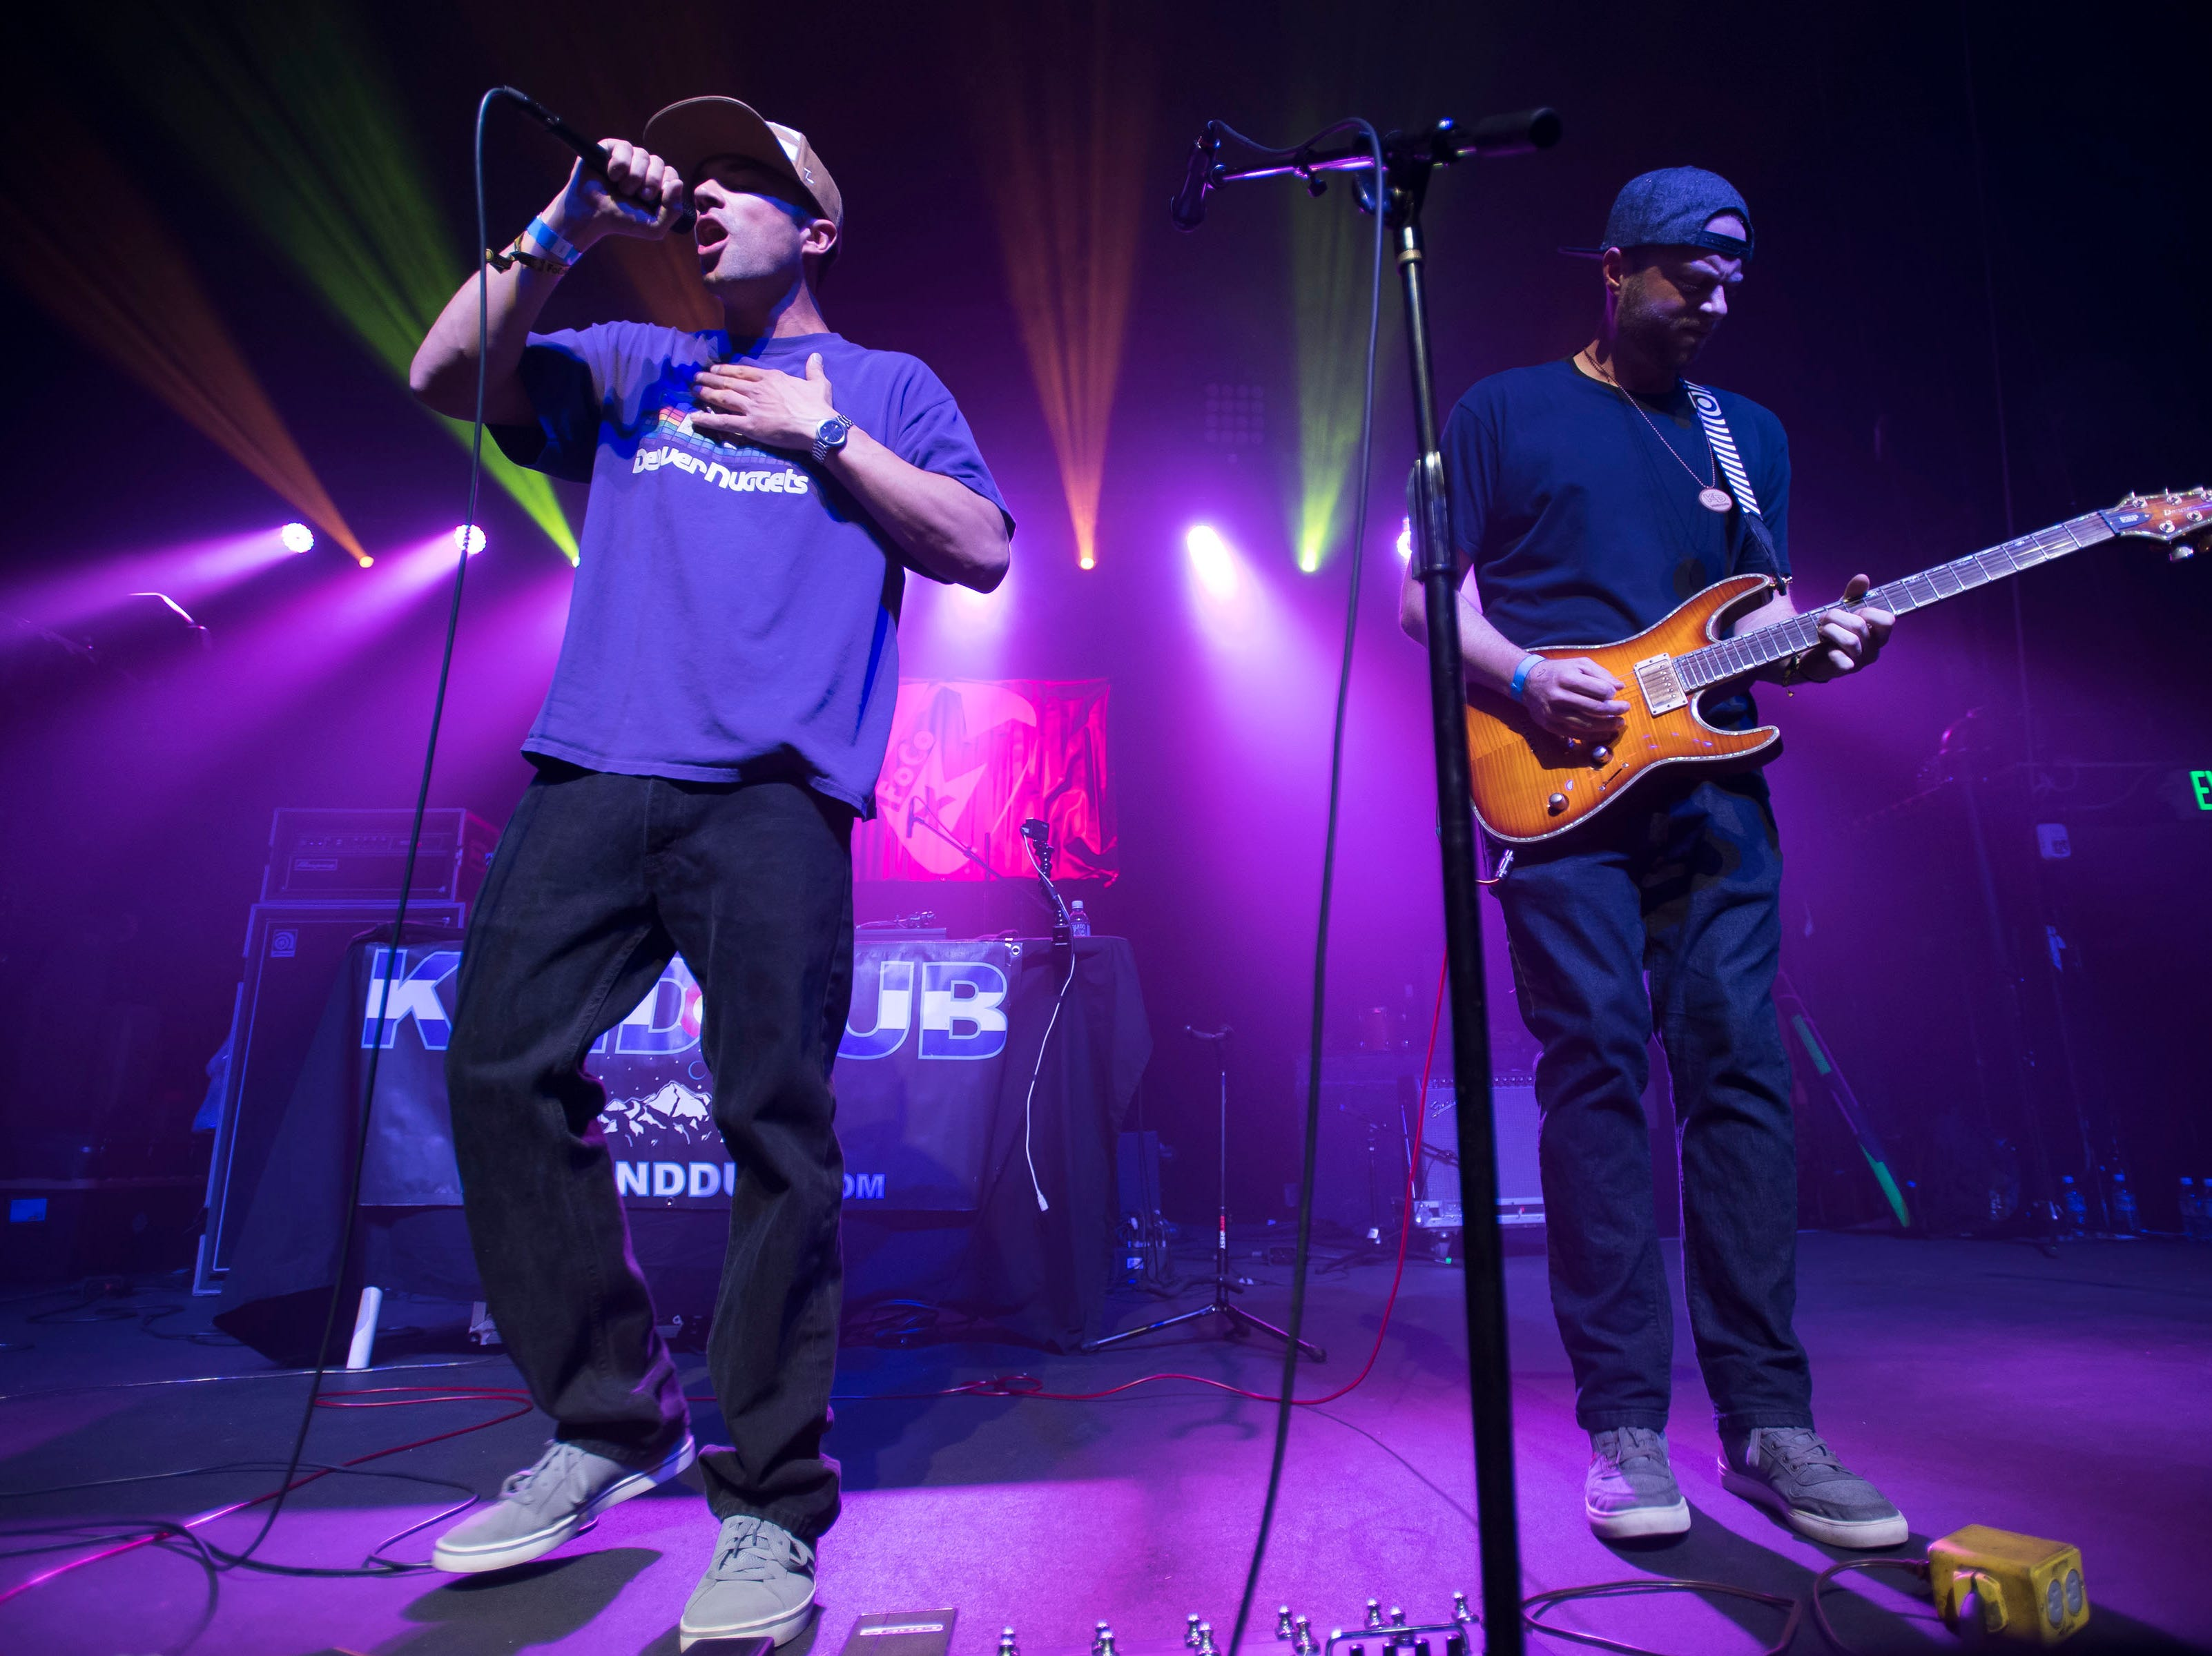 Kind Dub plays a set at The Aggie Theatre during the FoCoMX XI music festival on Saturday, April 27, 2019, in Fort Collins, Colo.